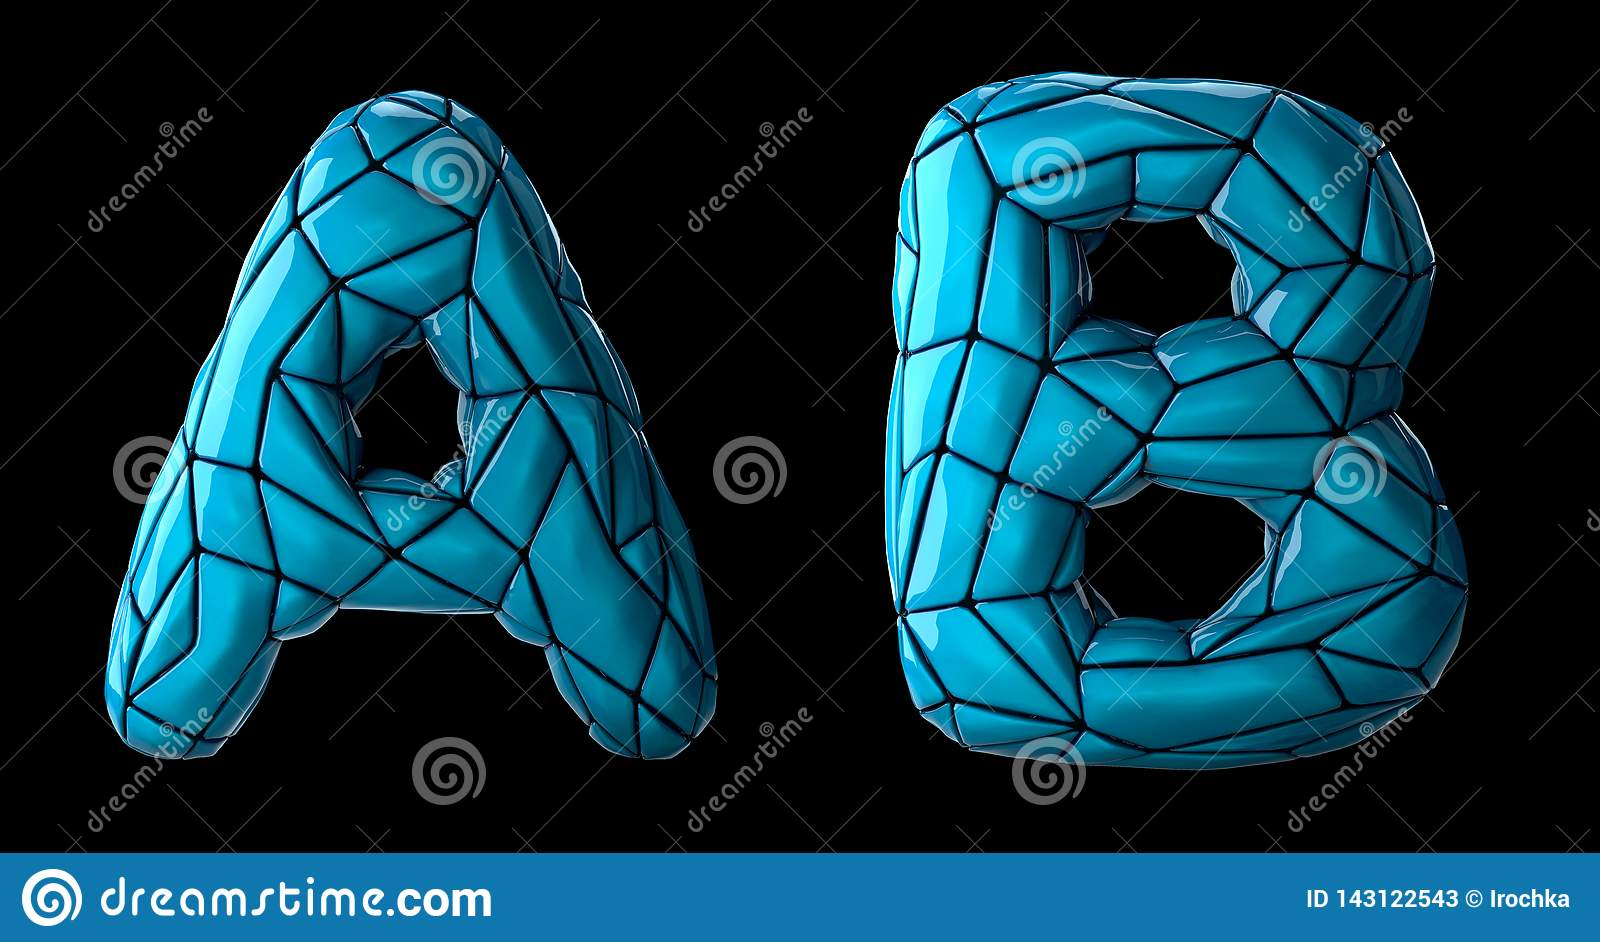 Realistic 3D letters set A, B made of low poly style. Collection symbols of low poly style blue color plastic isolated